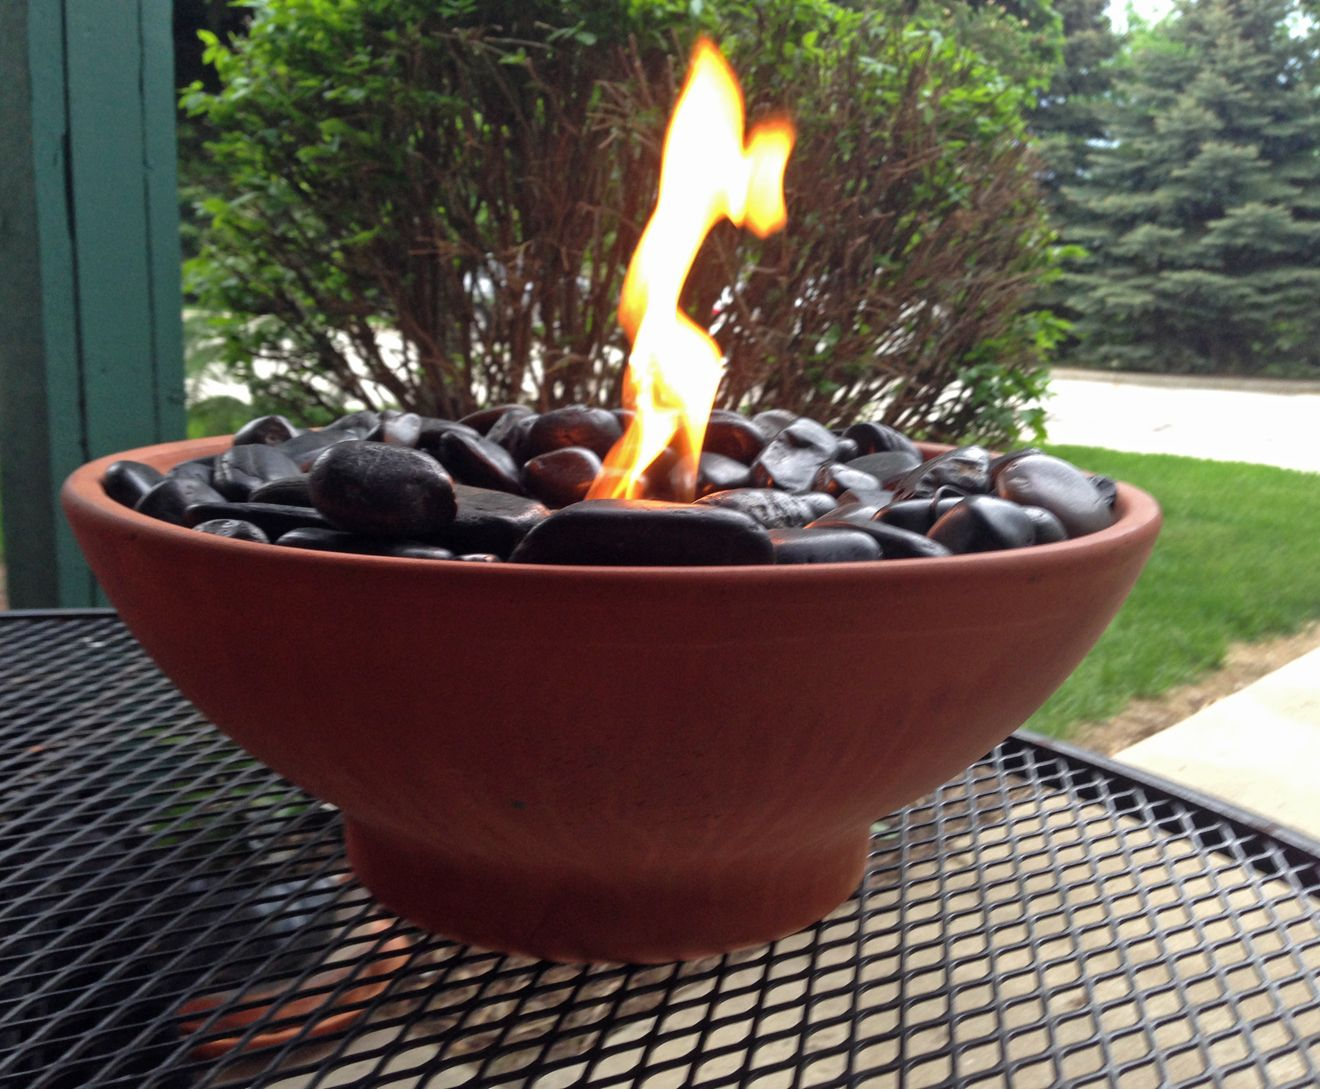 Diy Table Top Fire Pit Made With Black River Rocks And Real Flame within proportions 1320 X 1089